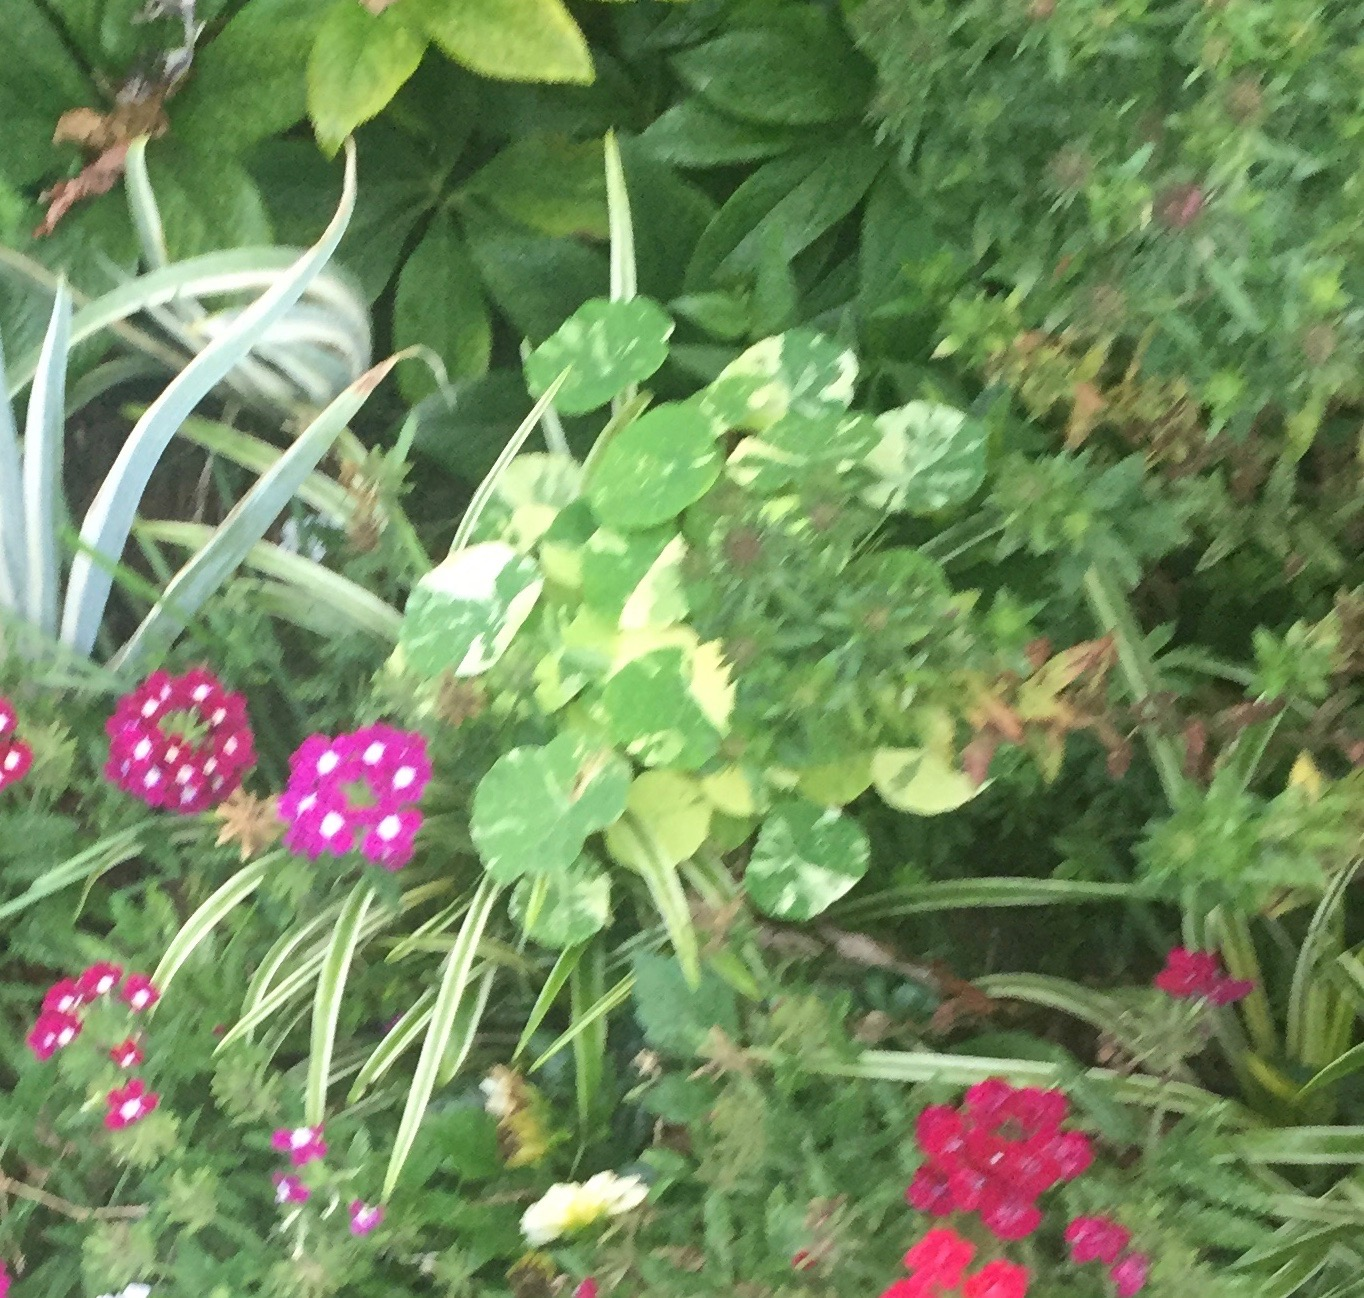 Nasturtium 'Alaska' - it's a blurry photo, but it gives a much better idea of how they really work in a real garden than the photos in seed catalogs. This was planted in a pretty shady spot and it didn't flower much (the flowers are verbena). These round leaves looked fresh and bright in this late September photo.